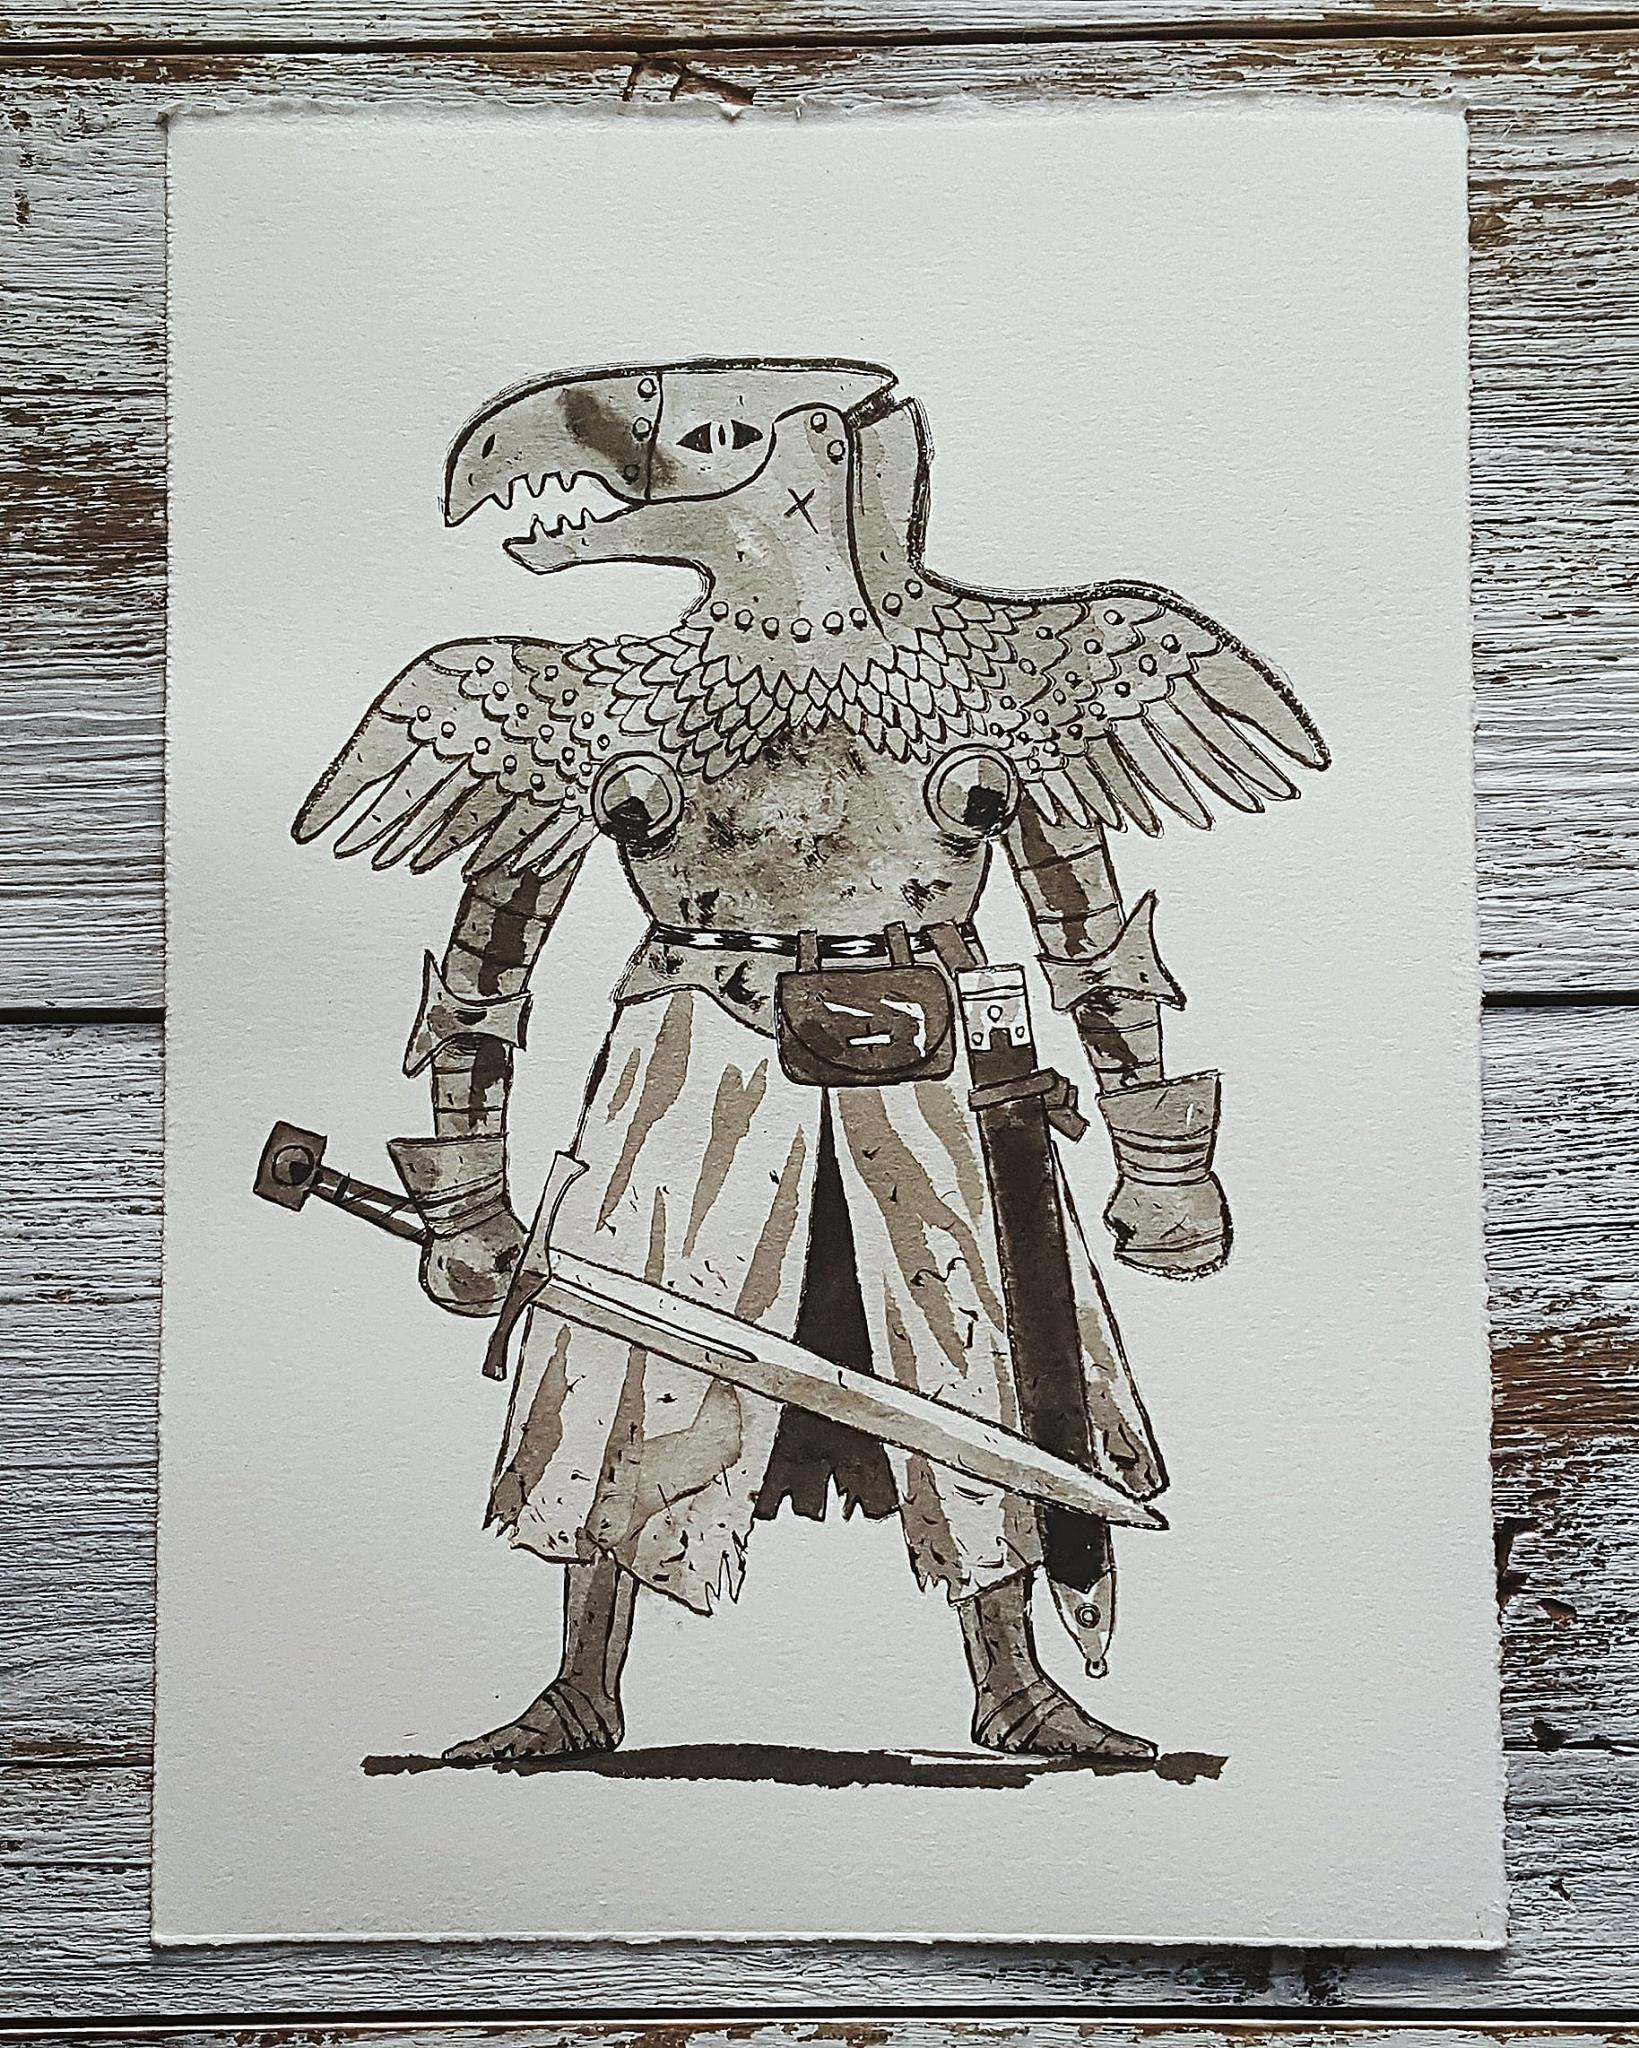 A Knight a Day No. 17, The Eagle Knight - A legendary knight who gained his fame after being the sole survivor of a party that was sent to battle and defeat a gargantuan, mystical bird. He used the bones of the bird to forge an enchanted armor which would make him one of the most formidable knights in the land.